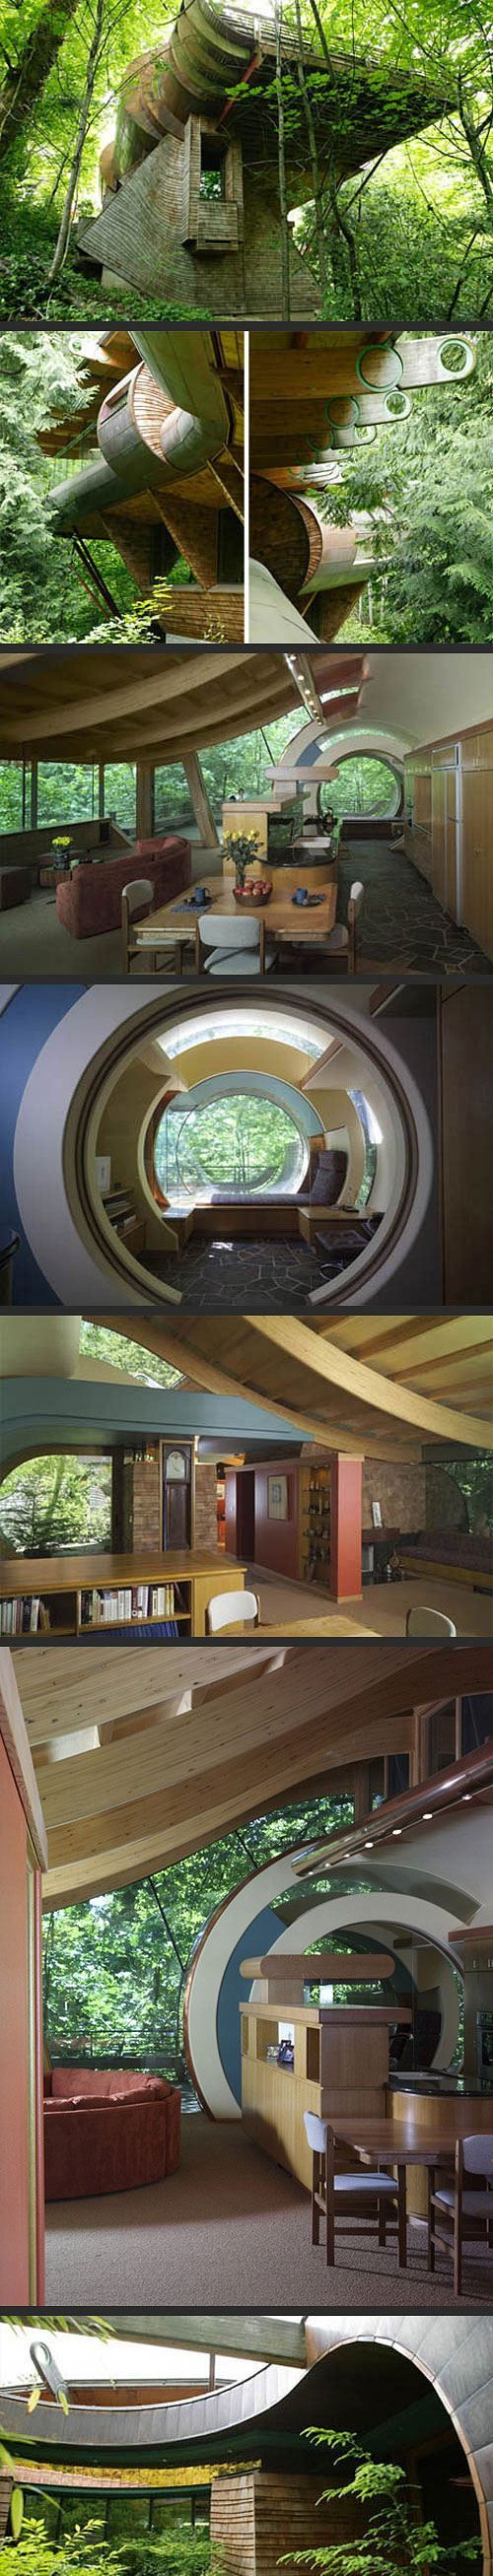 best 25 futuristic home ideas on pinterest futuristic interior